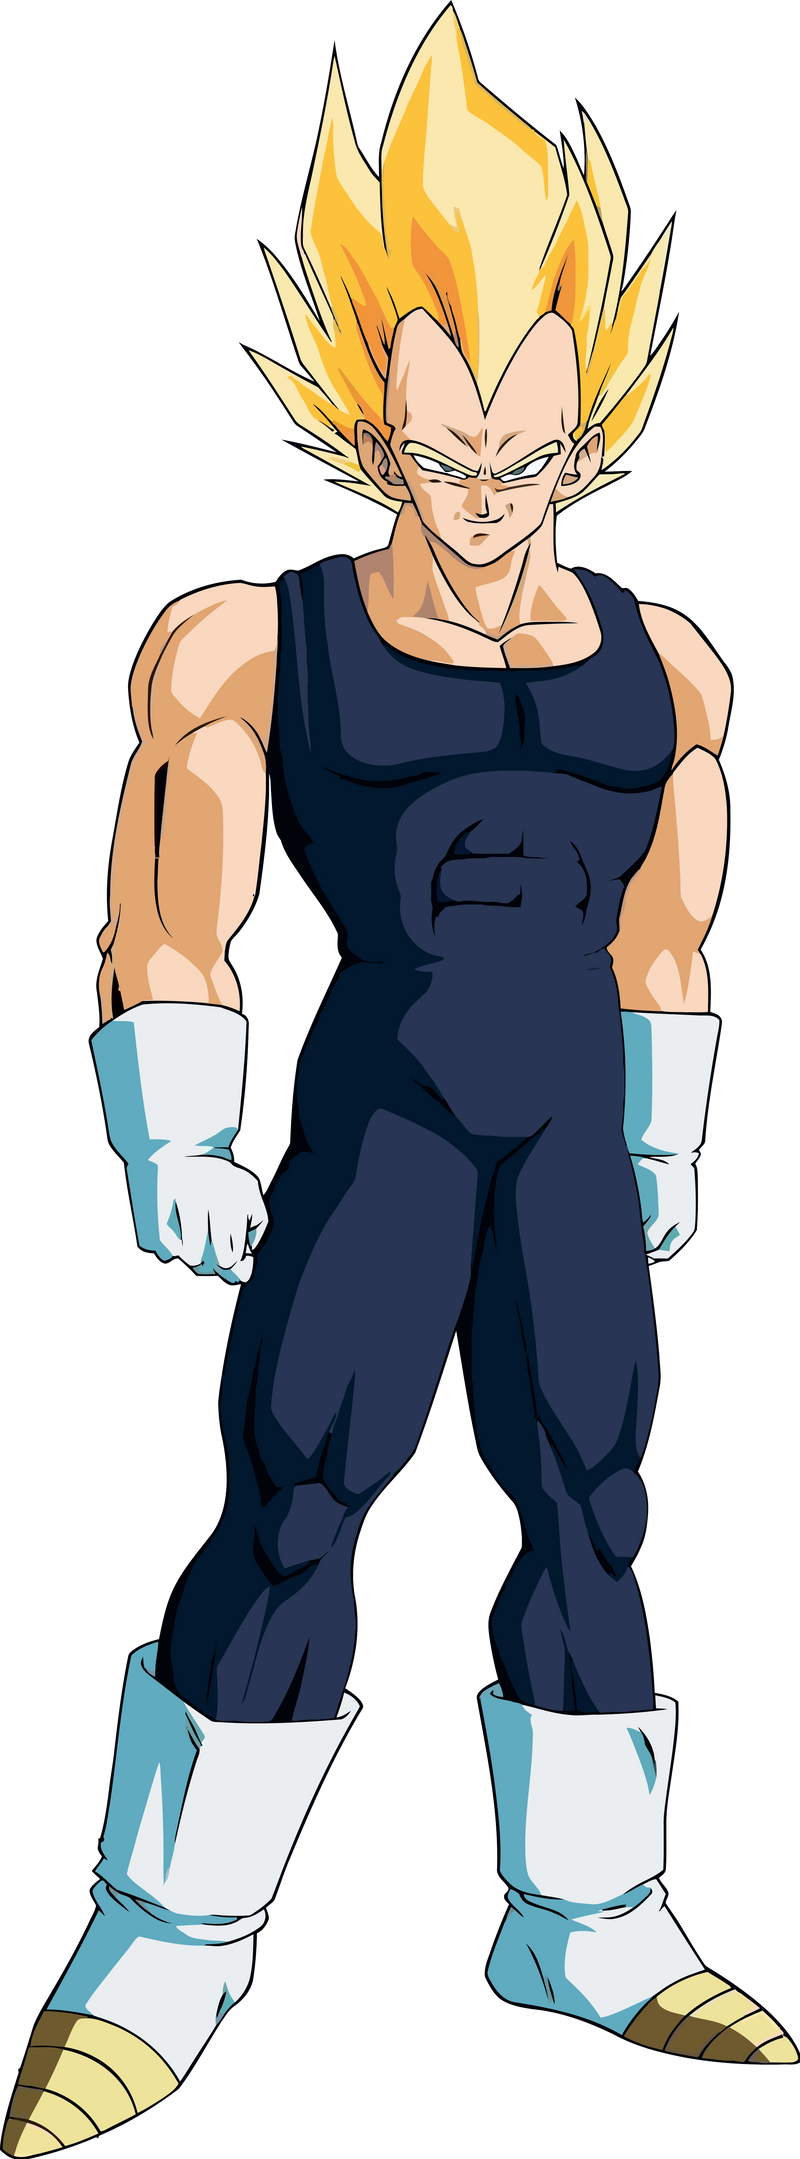 Vectorscan 034 - Vegeta 011 by VICDBZ